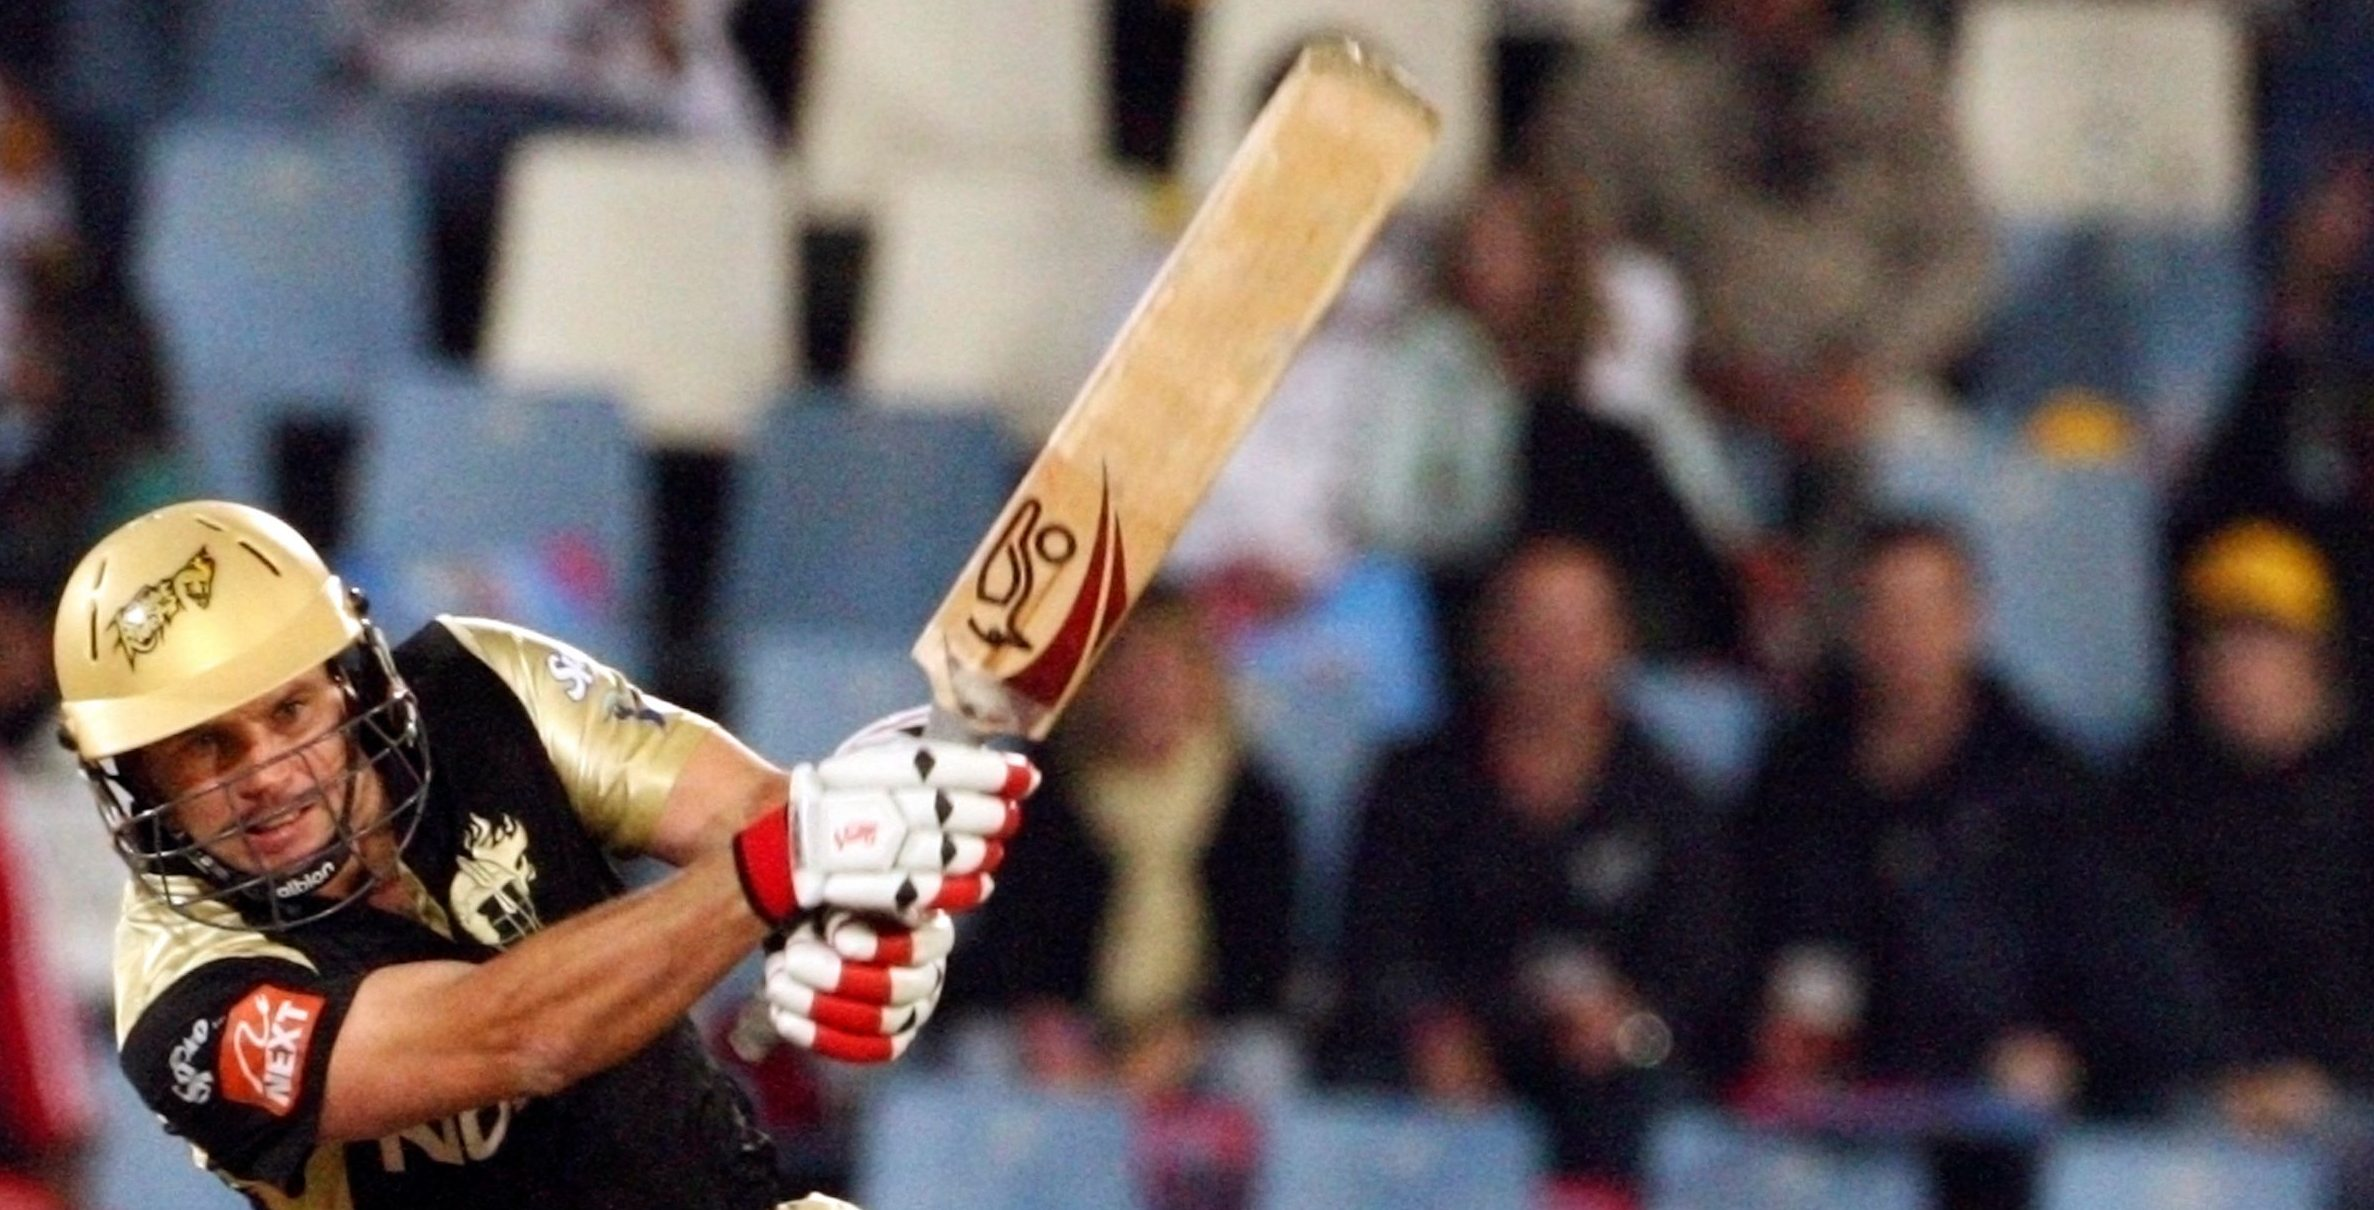 Brad Hodge of the Kolkata Knight Riders plays a shot during the 2009 Indian Premier League (IPL) T20 cricket match against the Chennai Super Kings in Centurion, May 18, 2009.